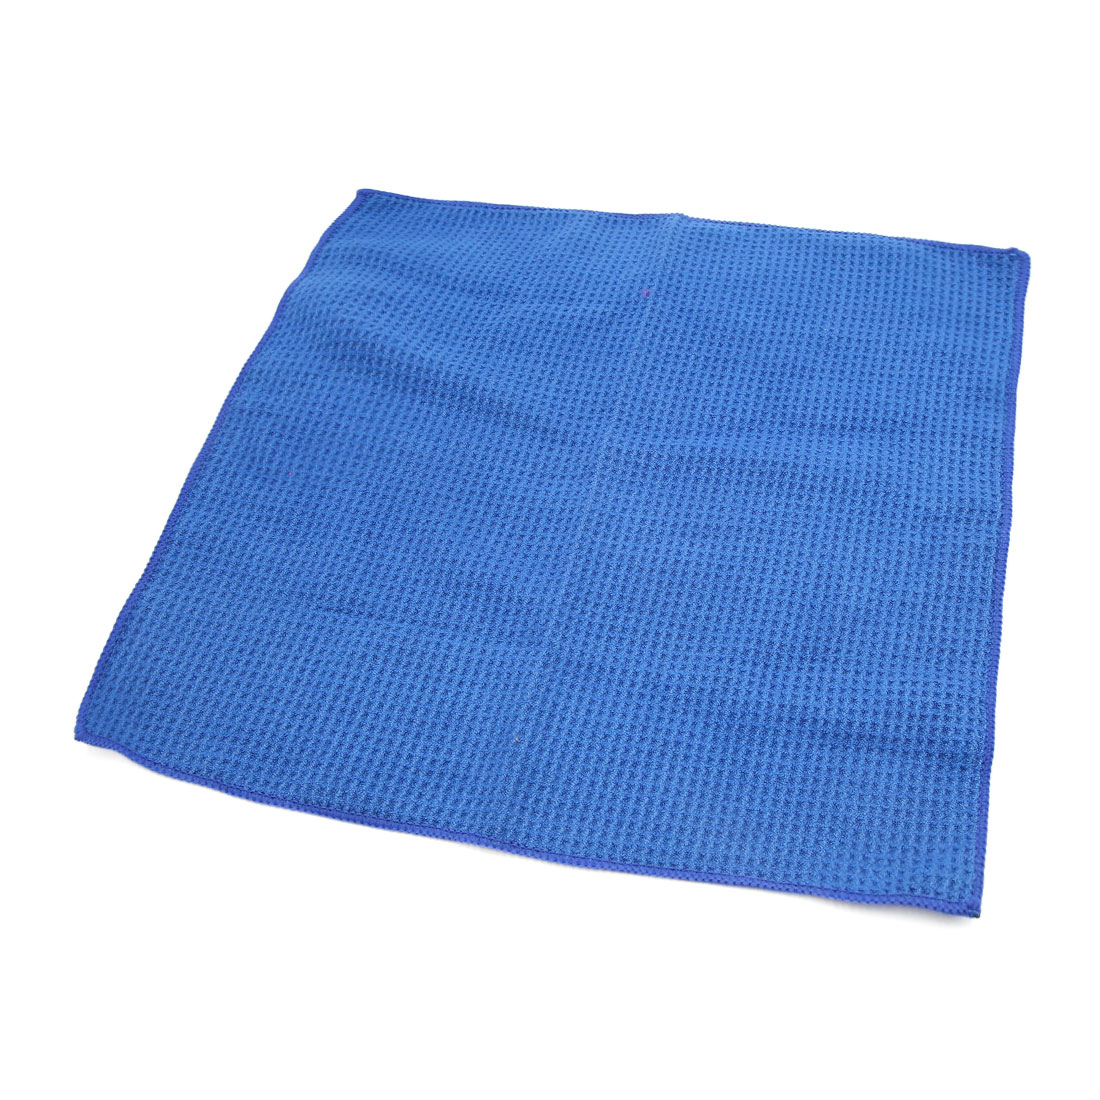 Blue Soft Home Auto Car Care Dry Washing Polishing Duster Cloth Towels